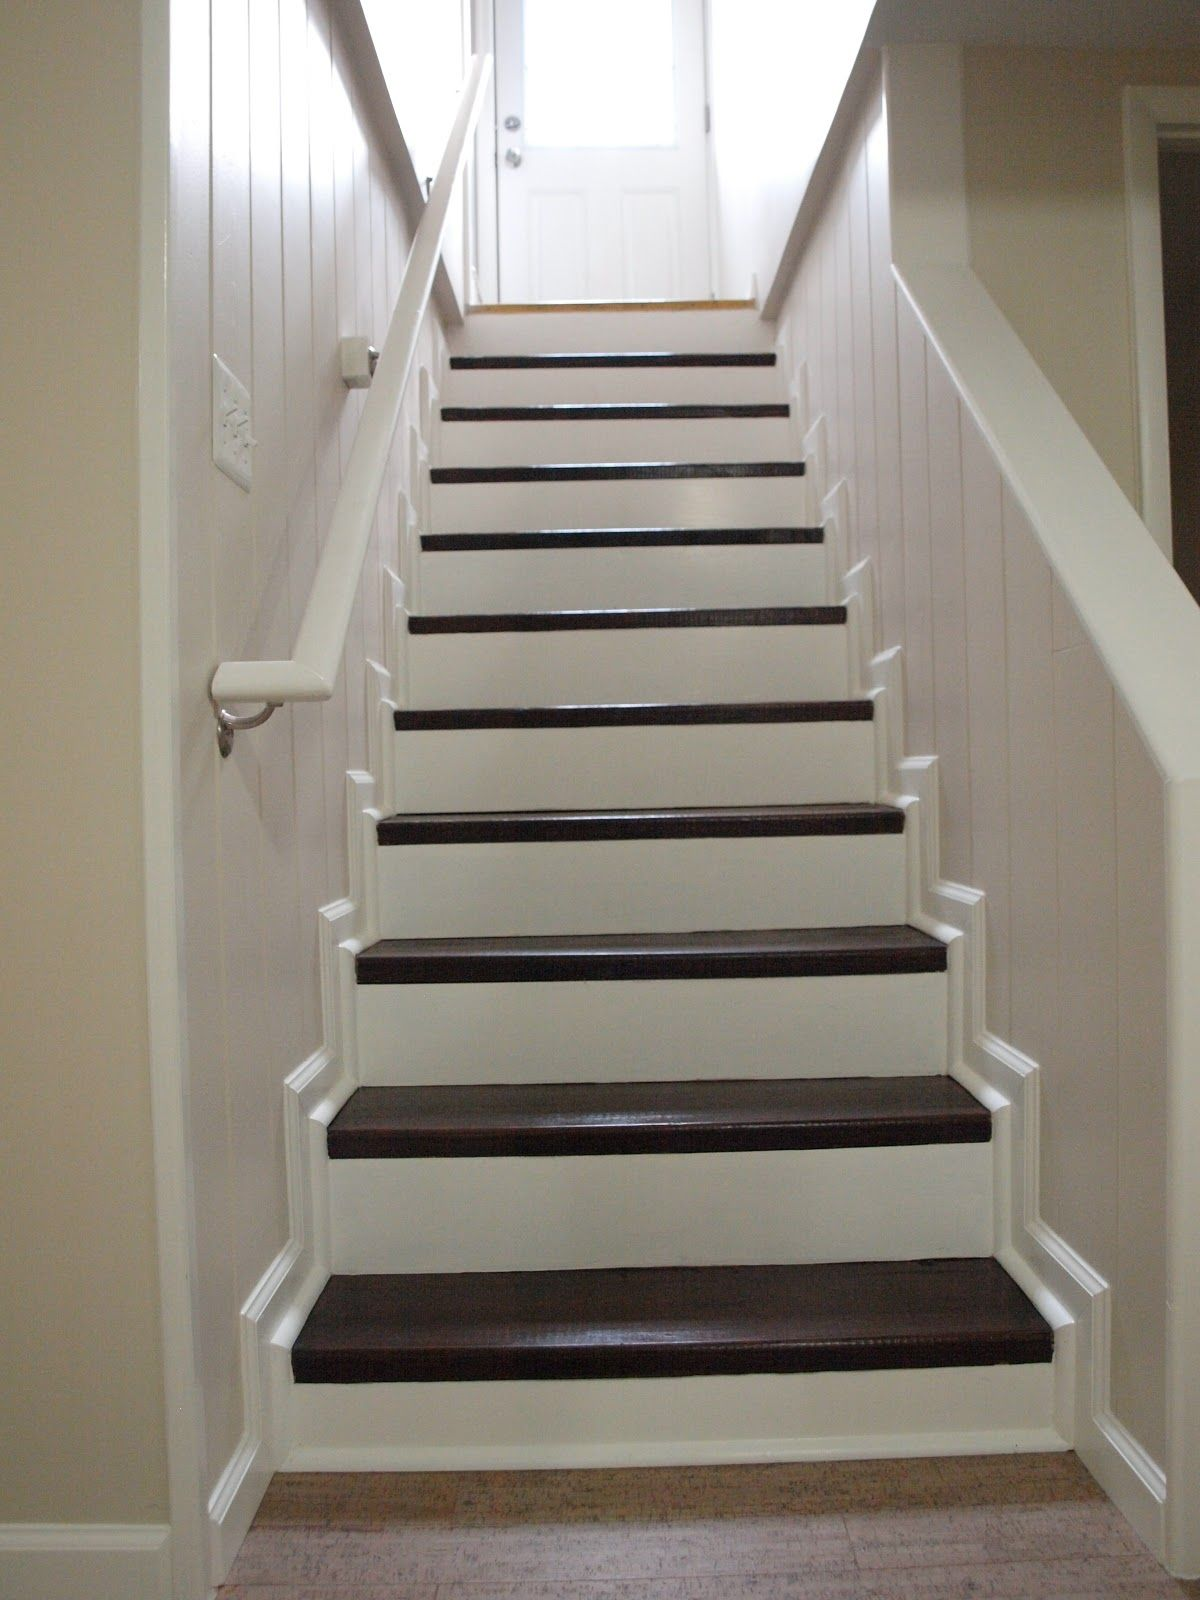 Flooring Options For Basement Stairs Basement stairs